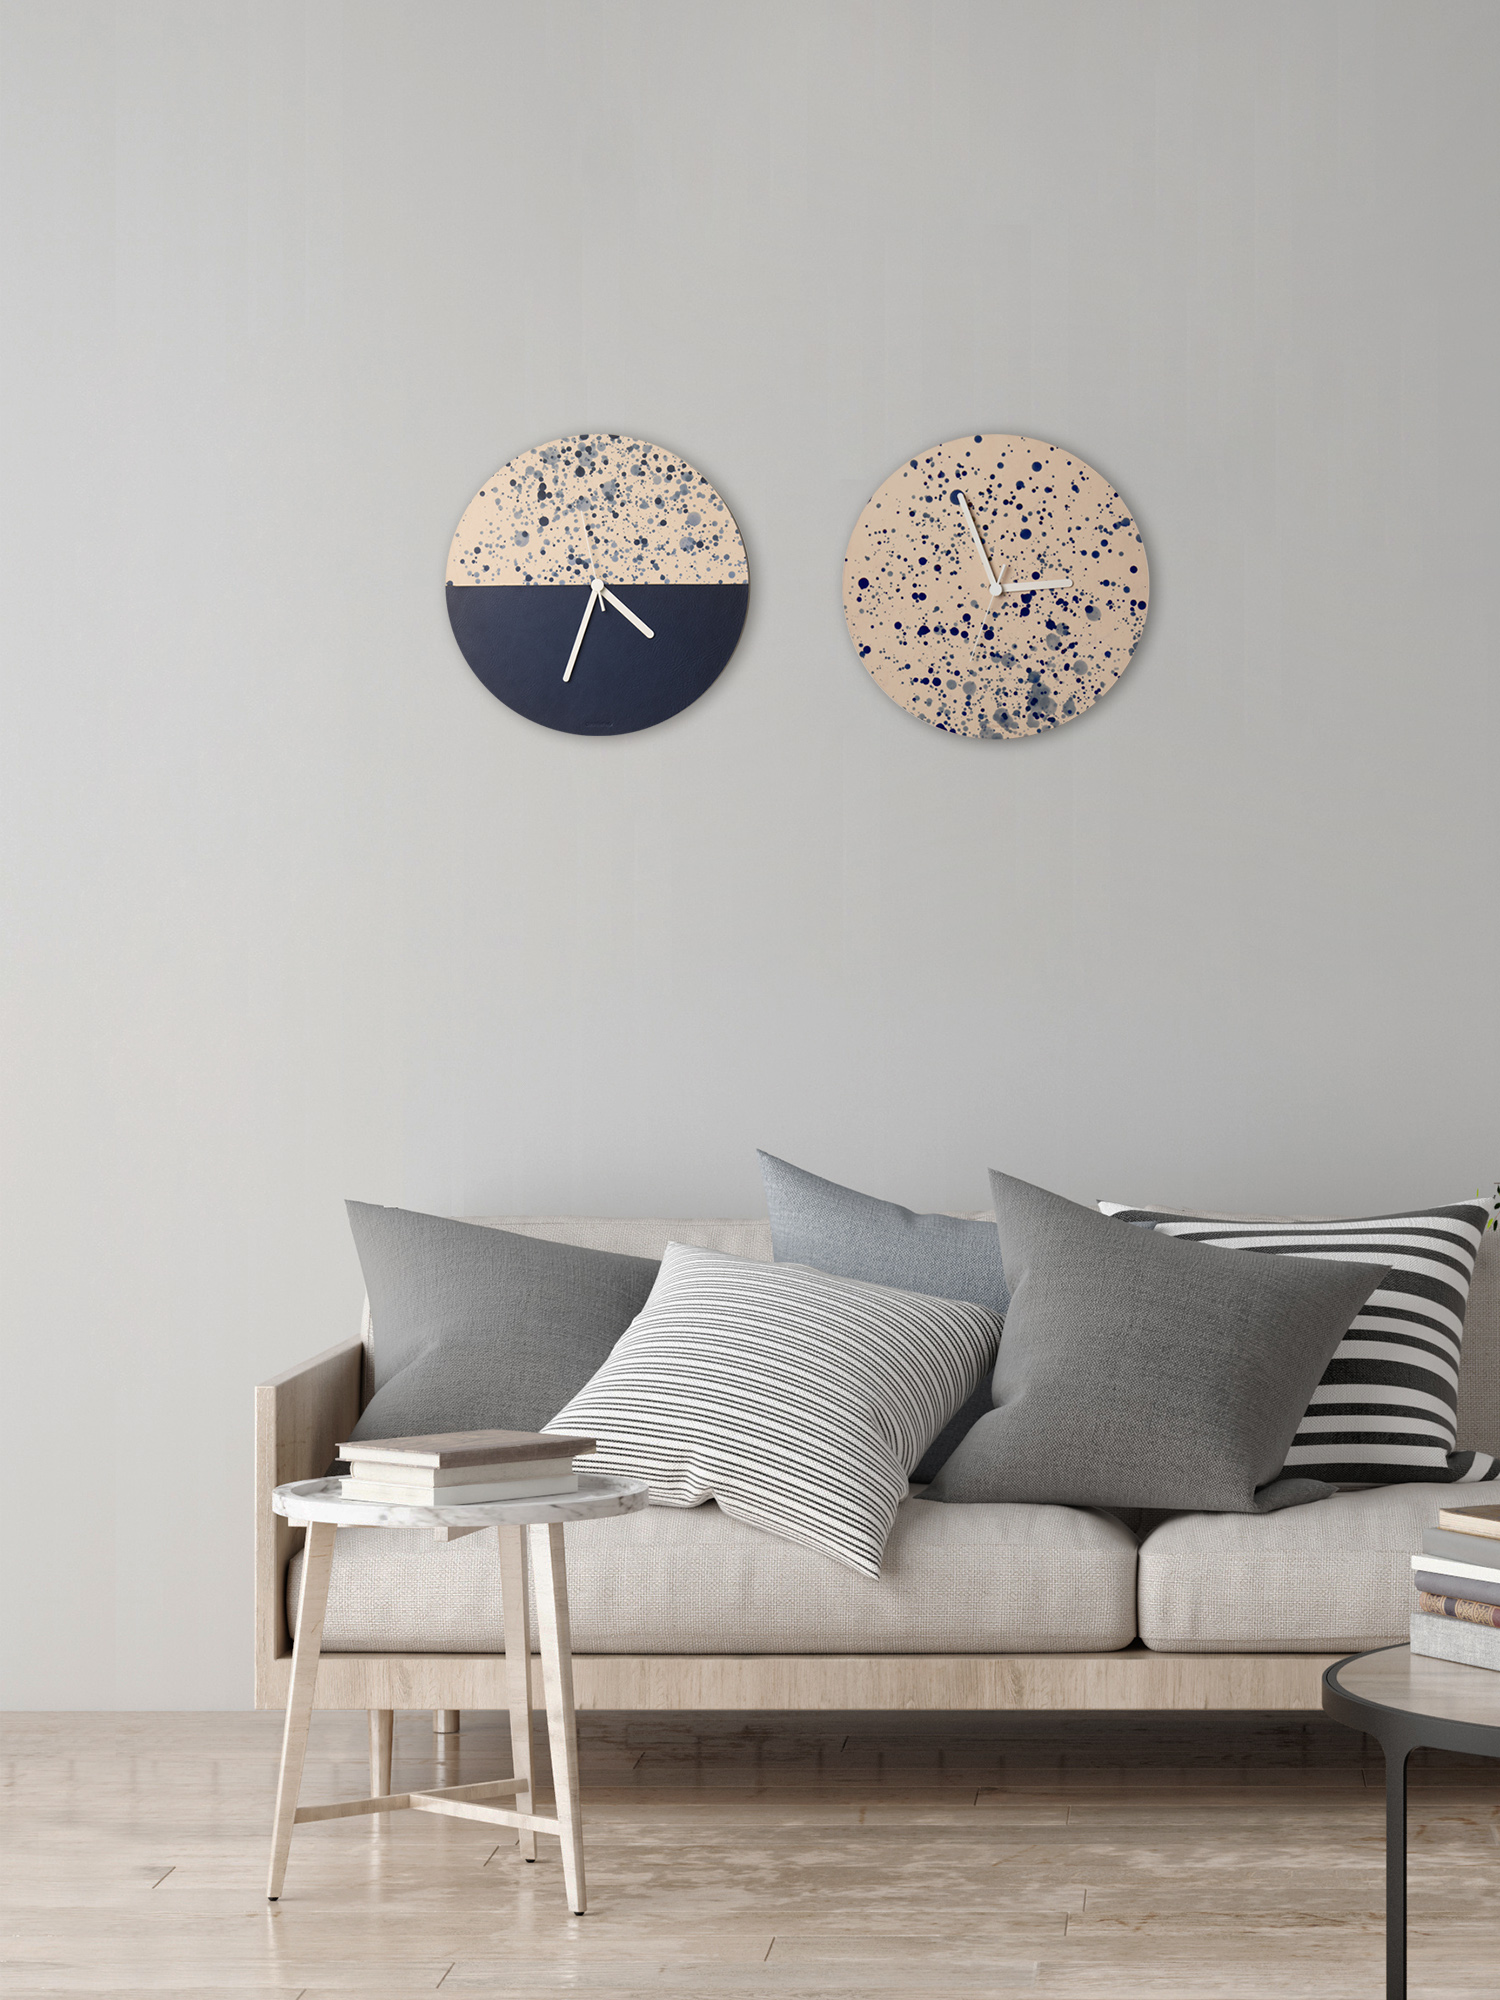 Leder-Wanduhr Aimi und Hana  Leather wall clock Aimi and Hana